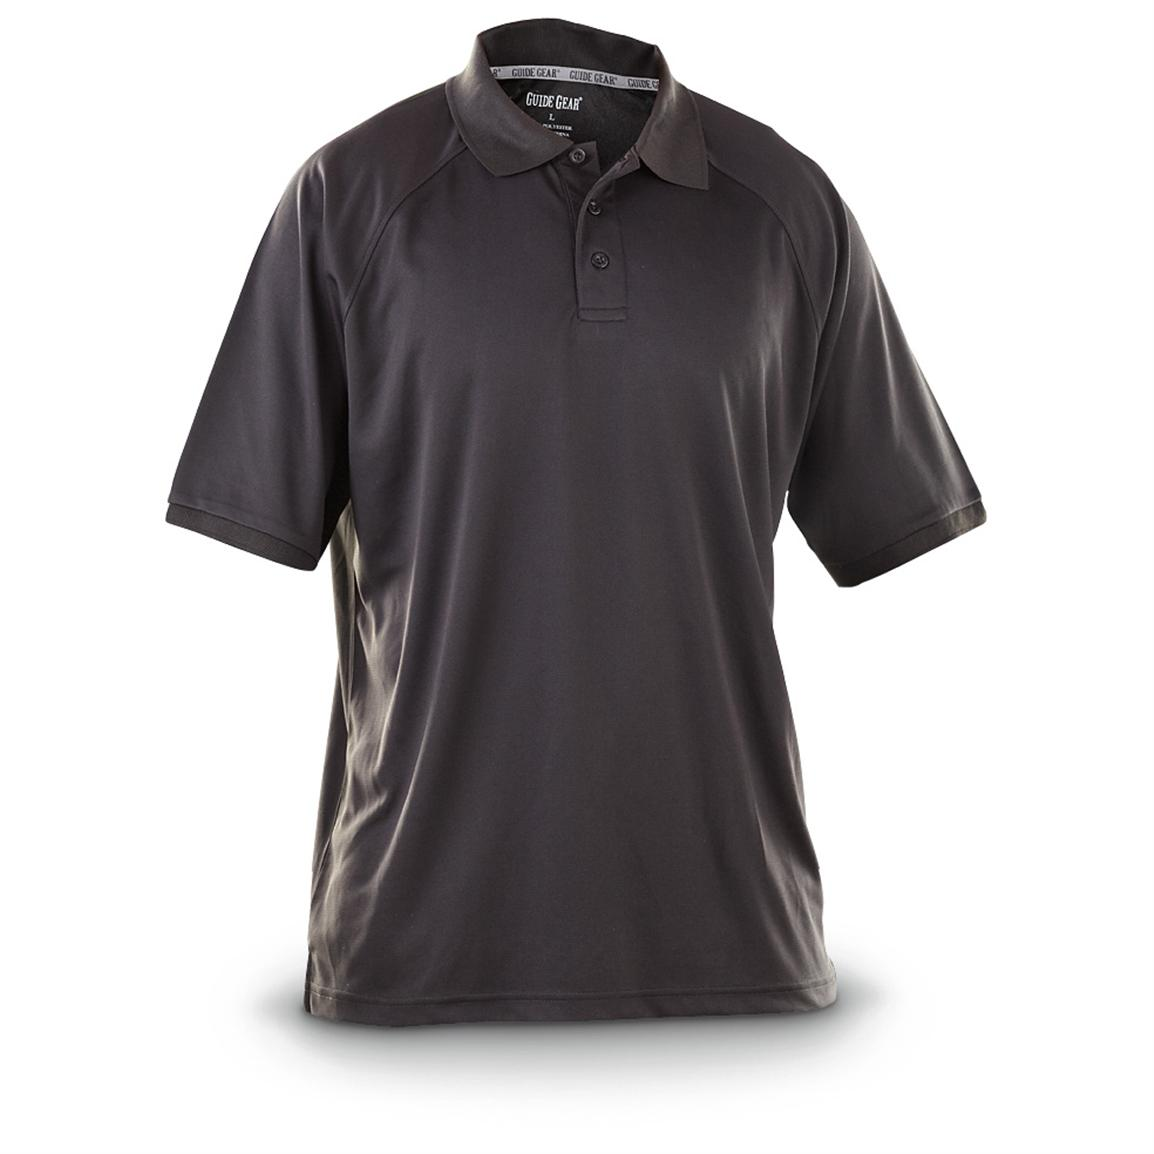 Guide Gear Men's Performance Short Sleeve Polo Shirt, Black